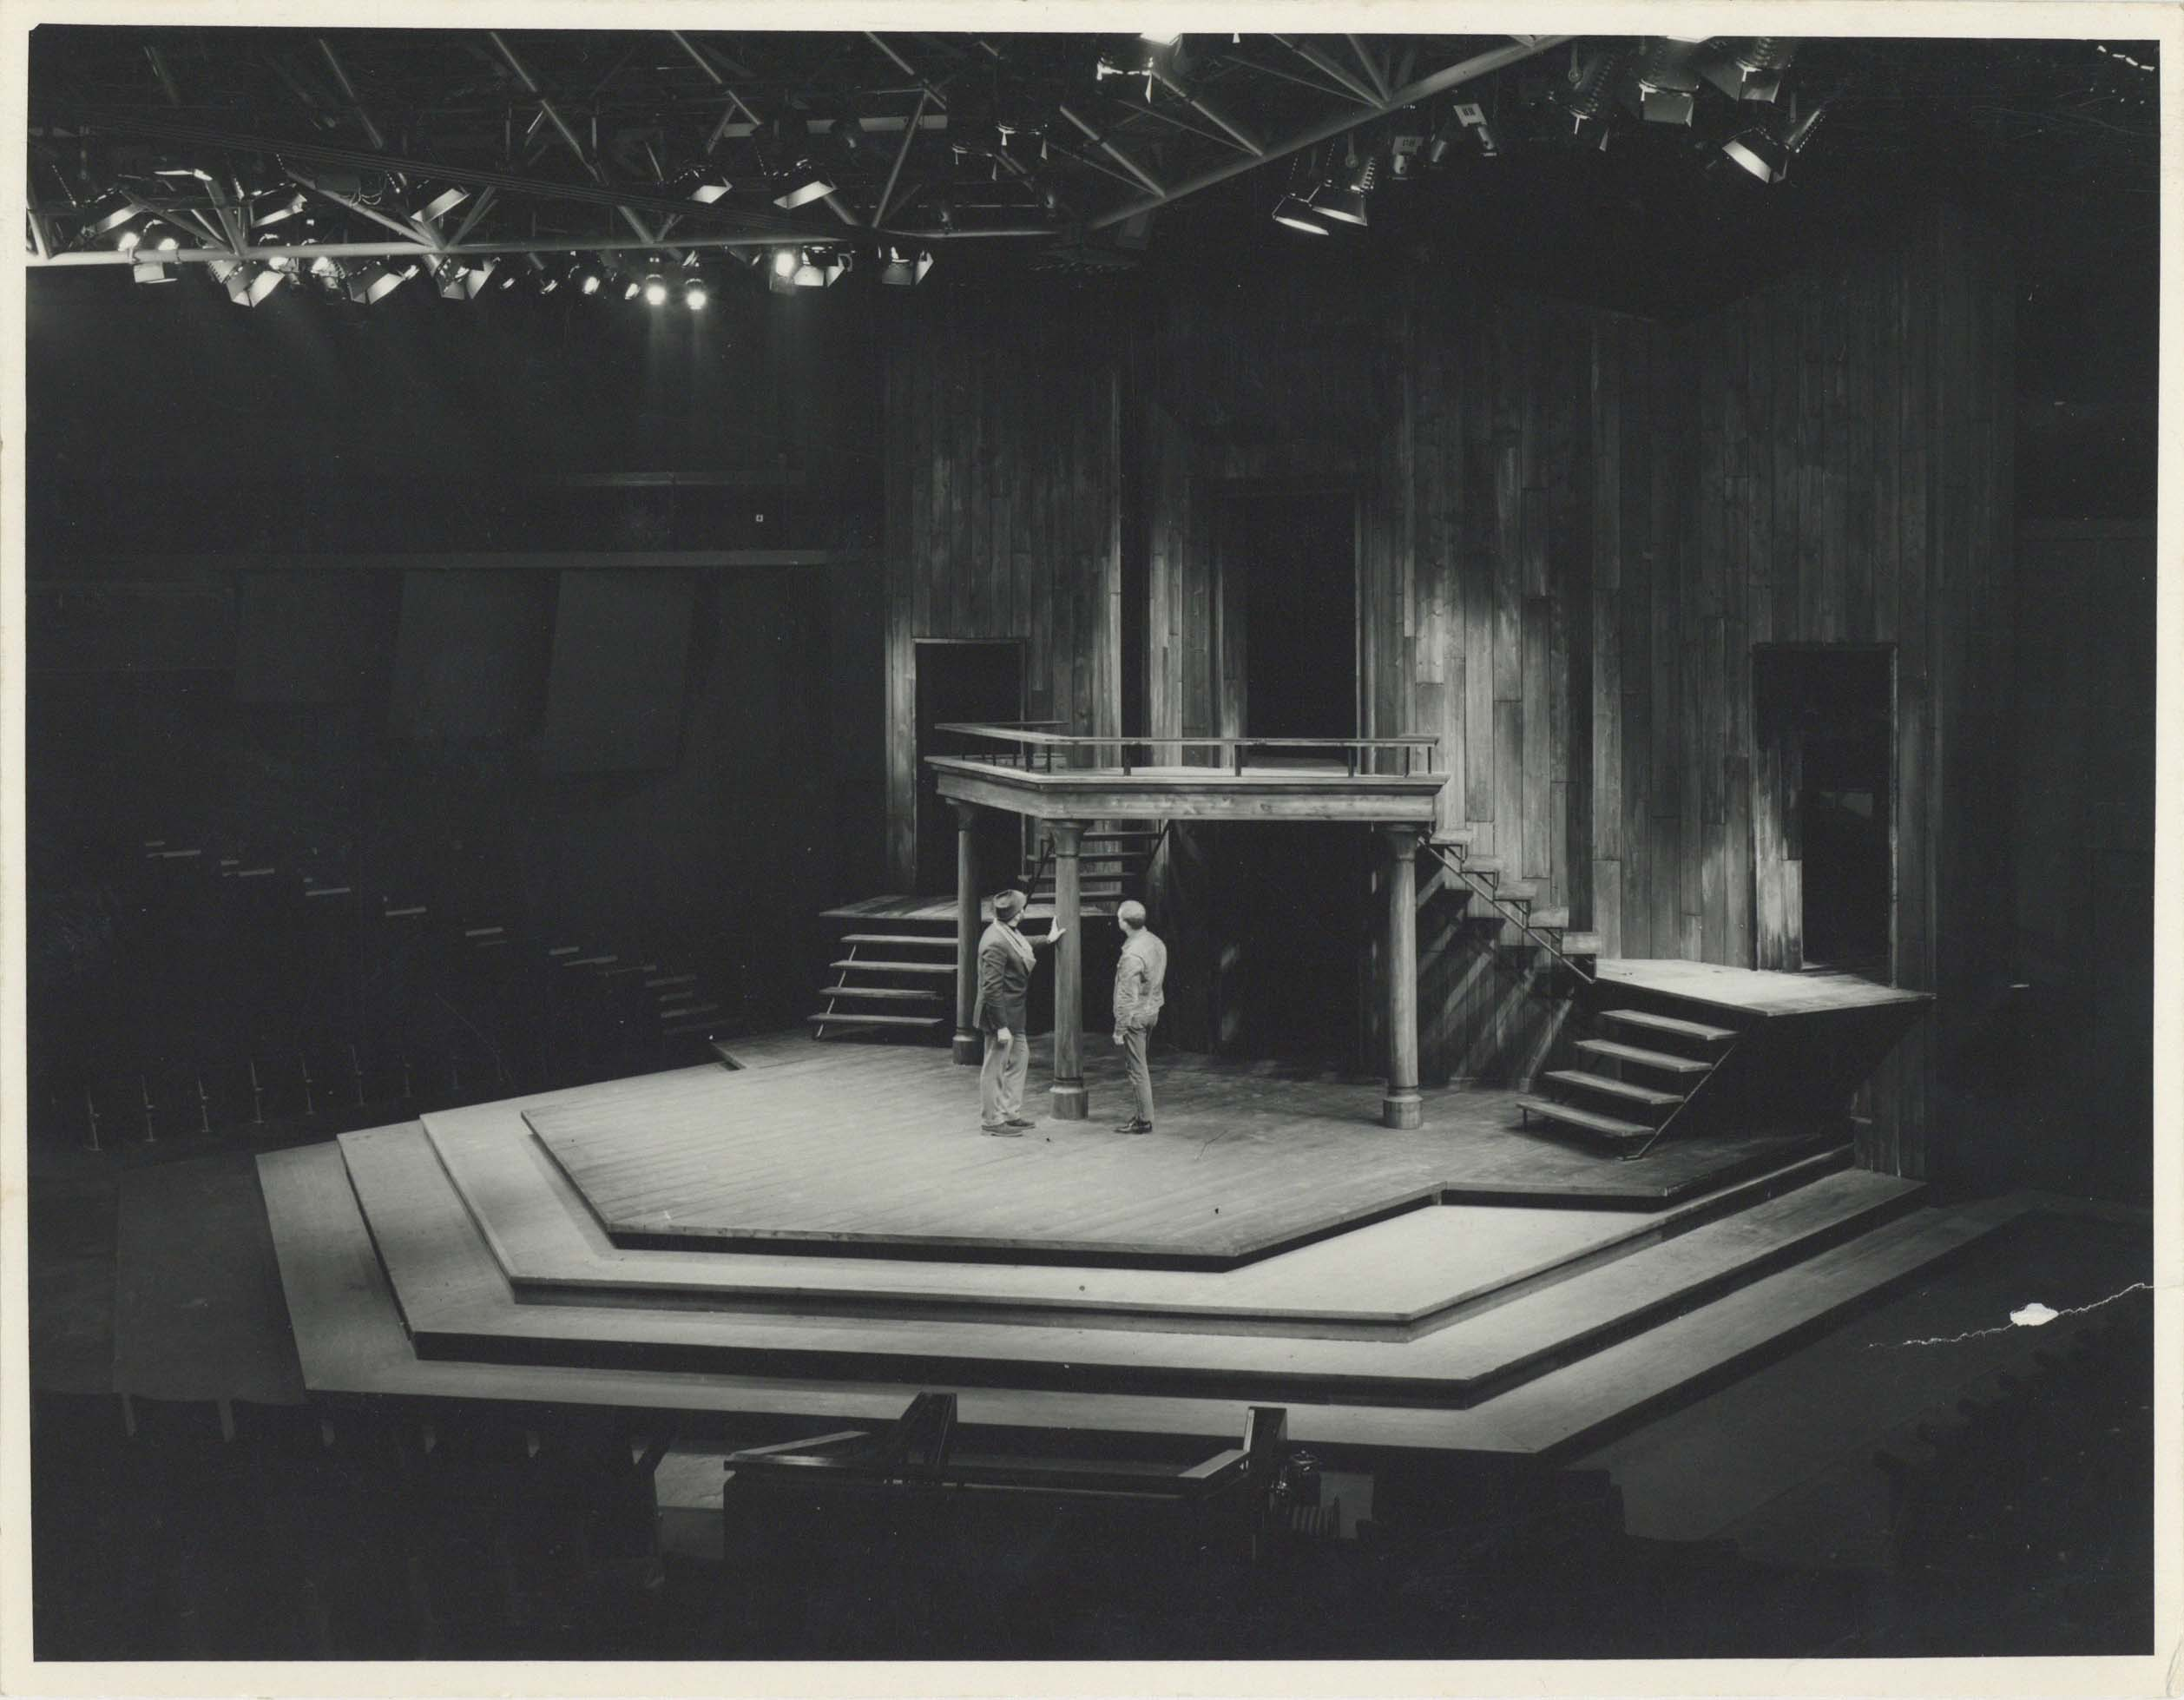 Photograph Interior Auditorium - Photographer unknown - Date unknown - Box 71 CFT WSRO - H21xW16